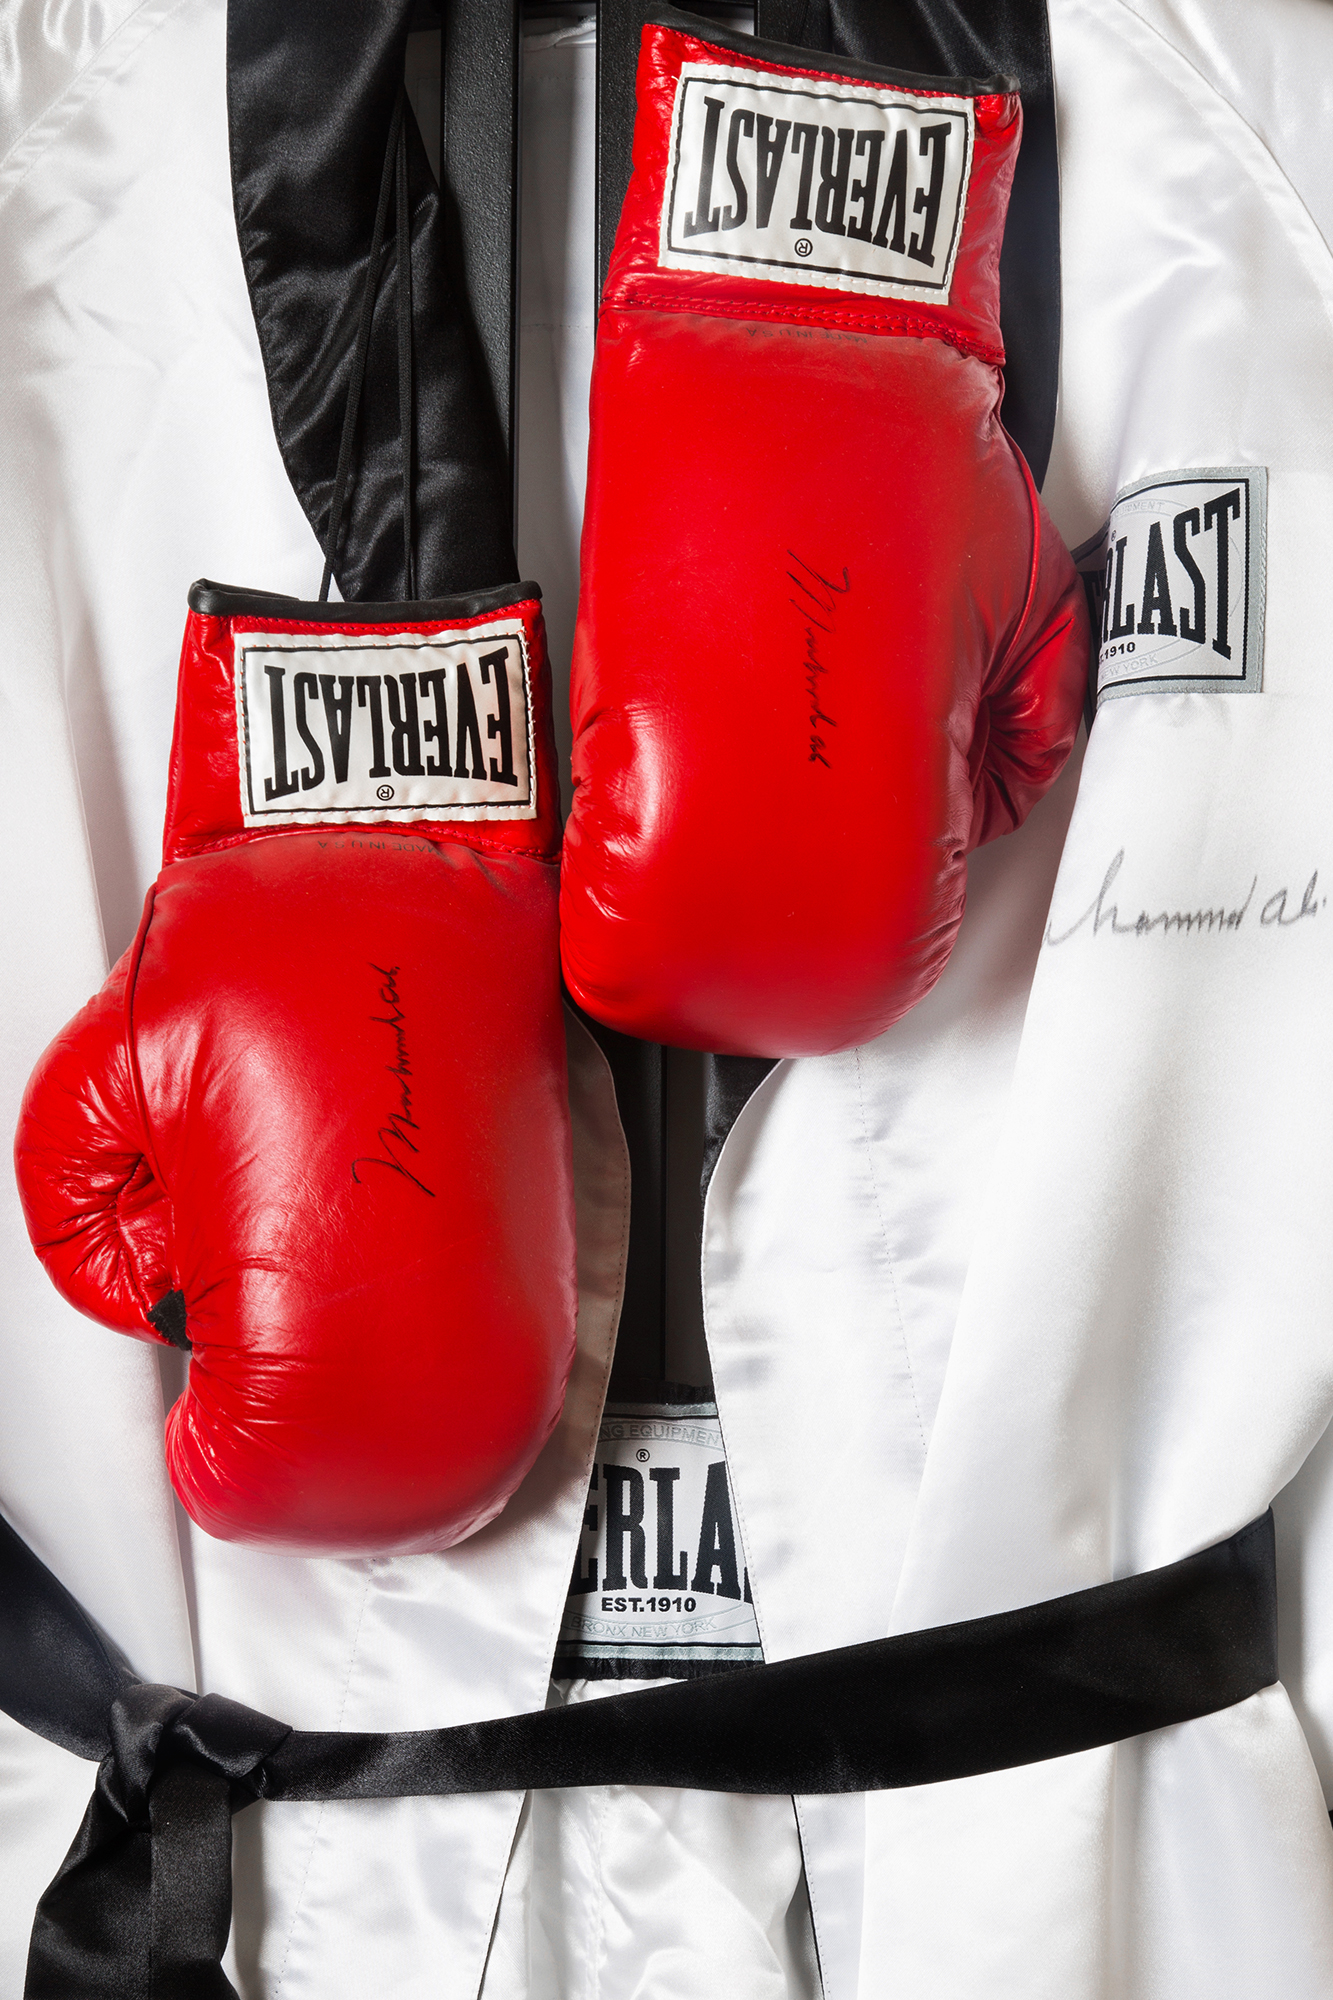 """Muhammad Ali Gloves and Robe:  These autographed boxing gloves and robe were worn by Muhammad Ali, who has appeared on the cover of Sports Illustrated 39 times since 1963—the most prolific cover athlete other than Michael Jordan. Sports Illustrated renamed its Legacy Award the Muhammad Ali Legacy Award in September to honor the boxer.  To have an award named in my honor by Sports Illustrated is something I could have never expected as a young man back in 1963 when I posed for that first cover. I am truly touched,"""" Ali said"""